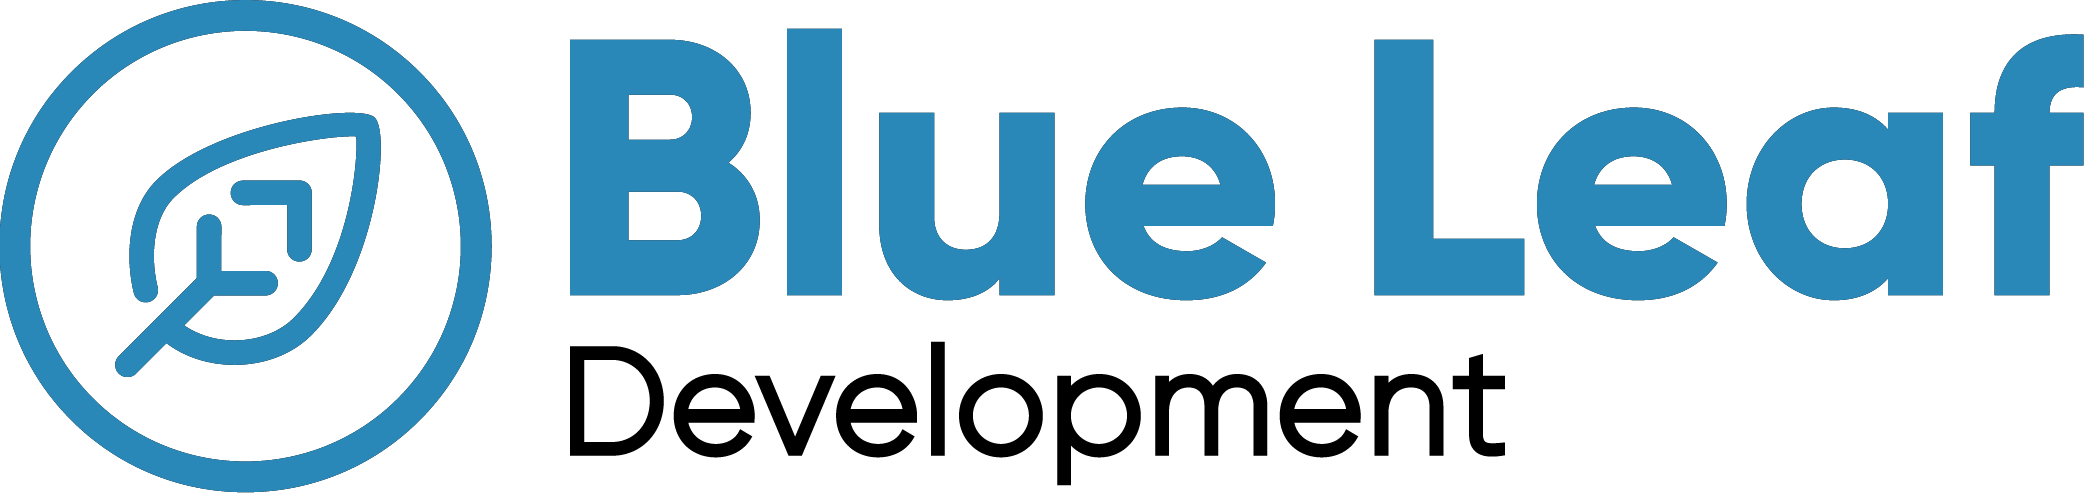 Blue Leaf - Logo 2019